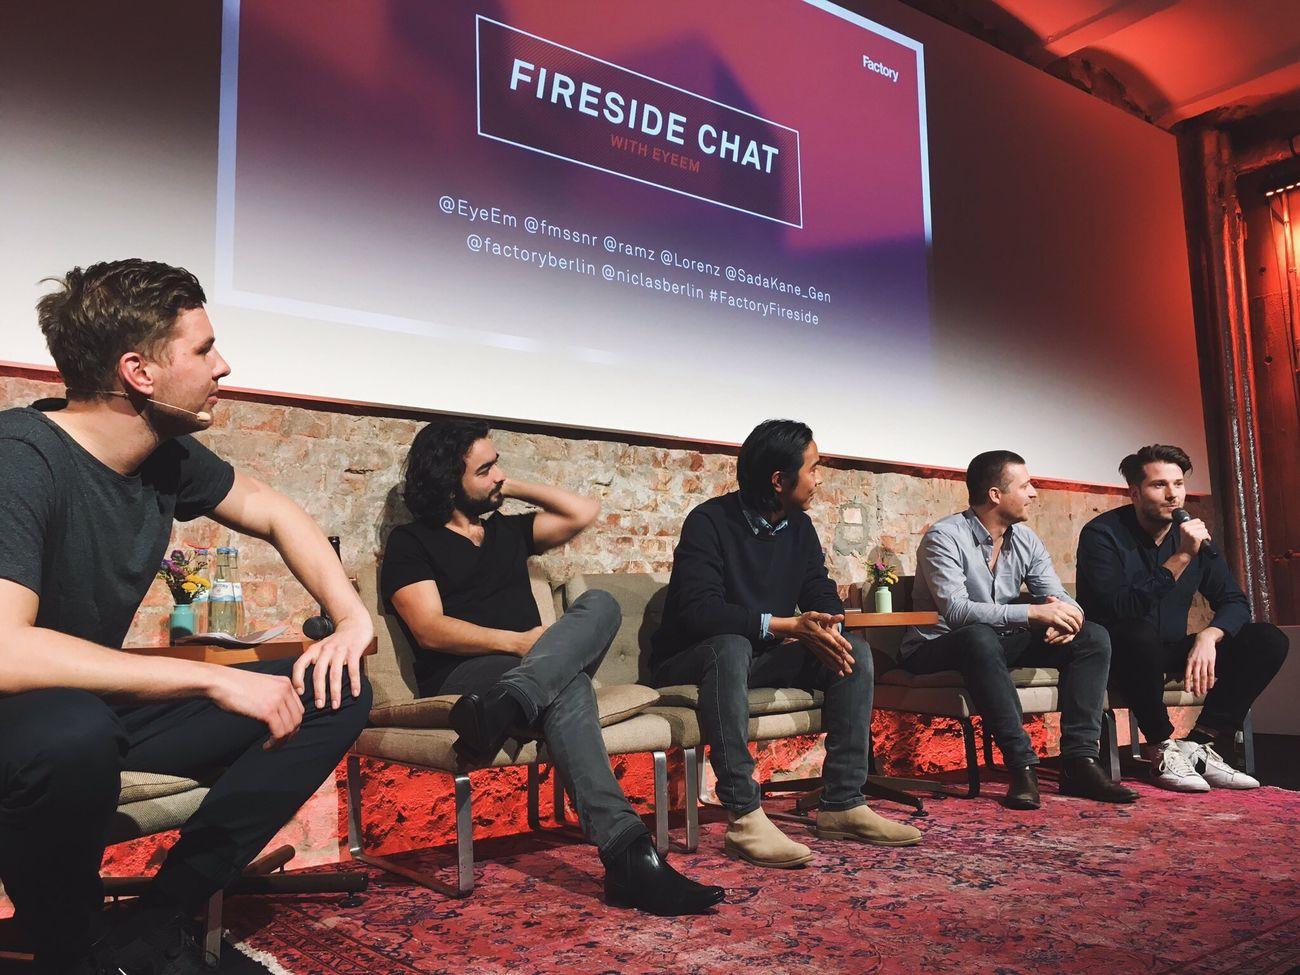 Founder love: It was so lovely to see Flo, Ramzi, Lorenz and Gen all together on stage at Factory Berlin's Fireside Chat last night! ❤